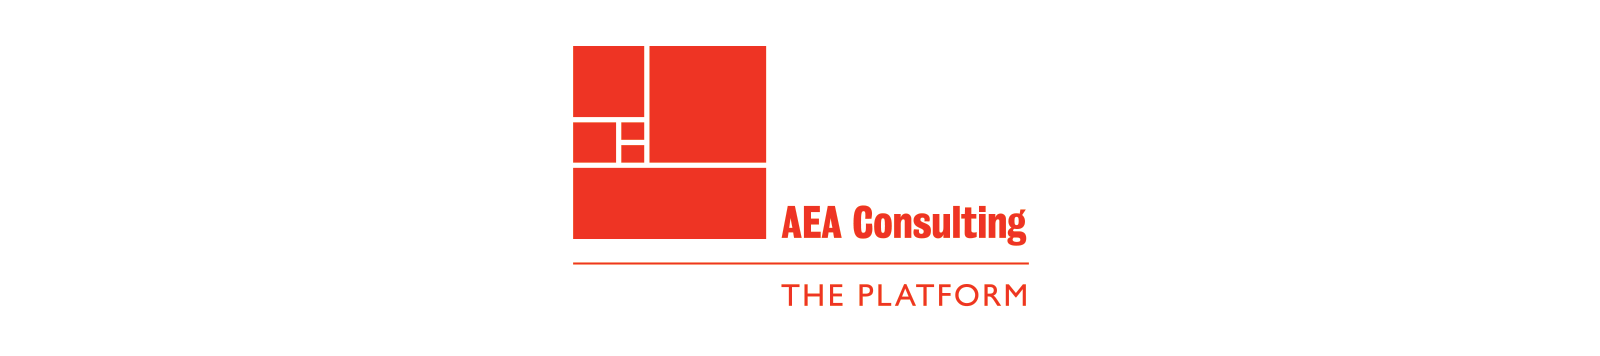 AEA Consulting: The Platform